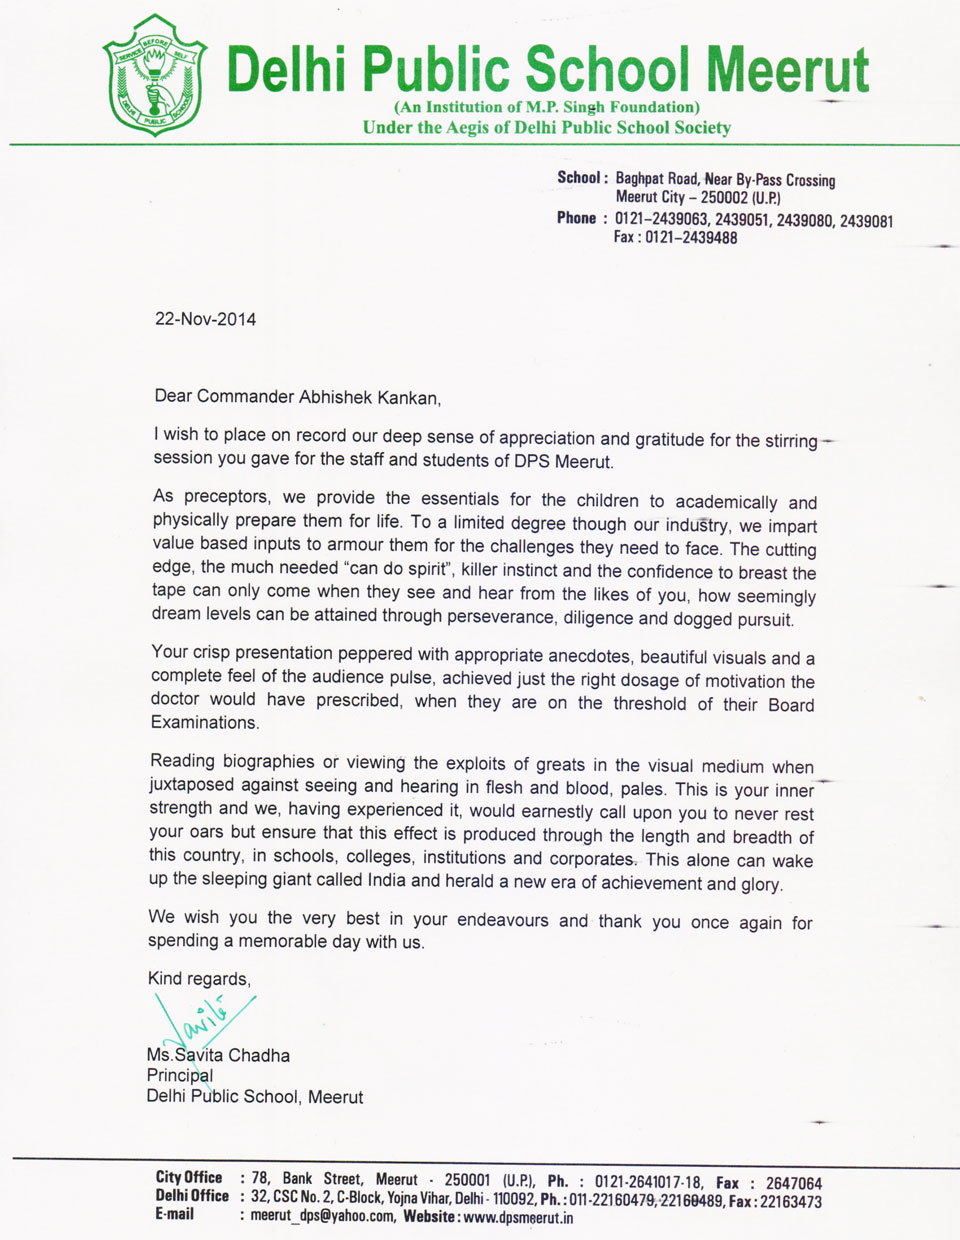 Letter by DPS Meerut Principal on Igniting the Achiever Within Program